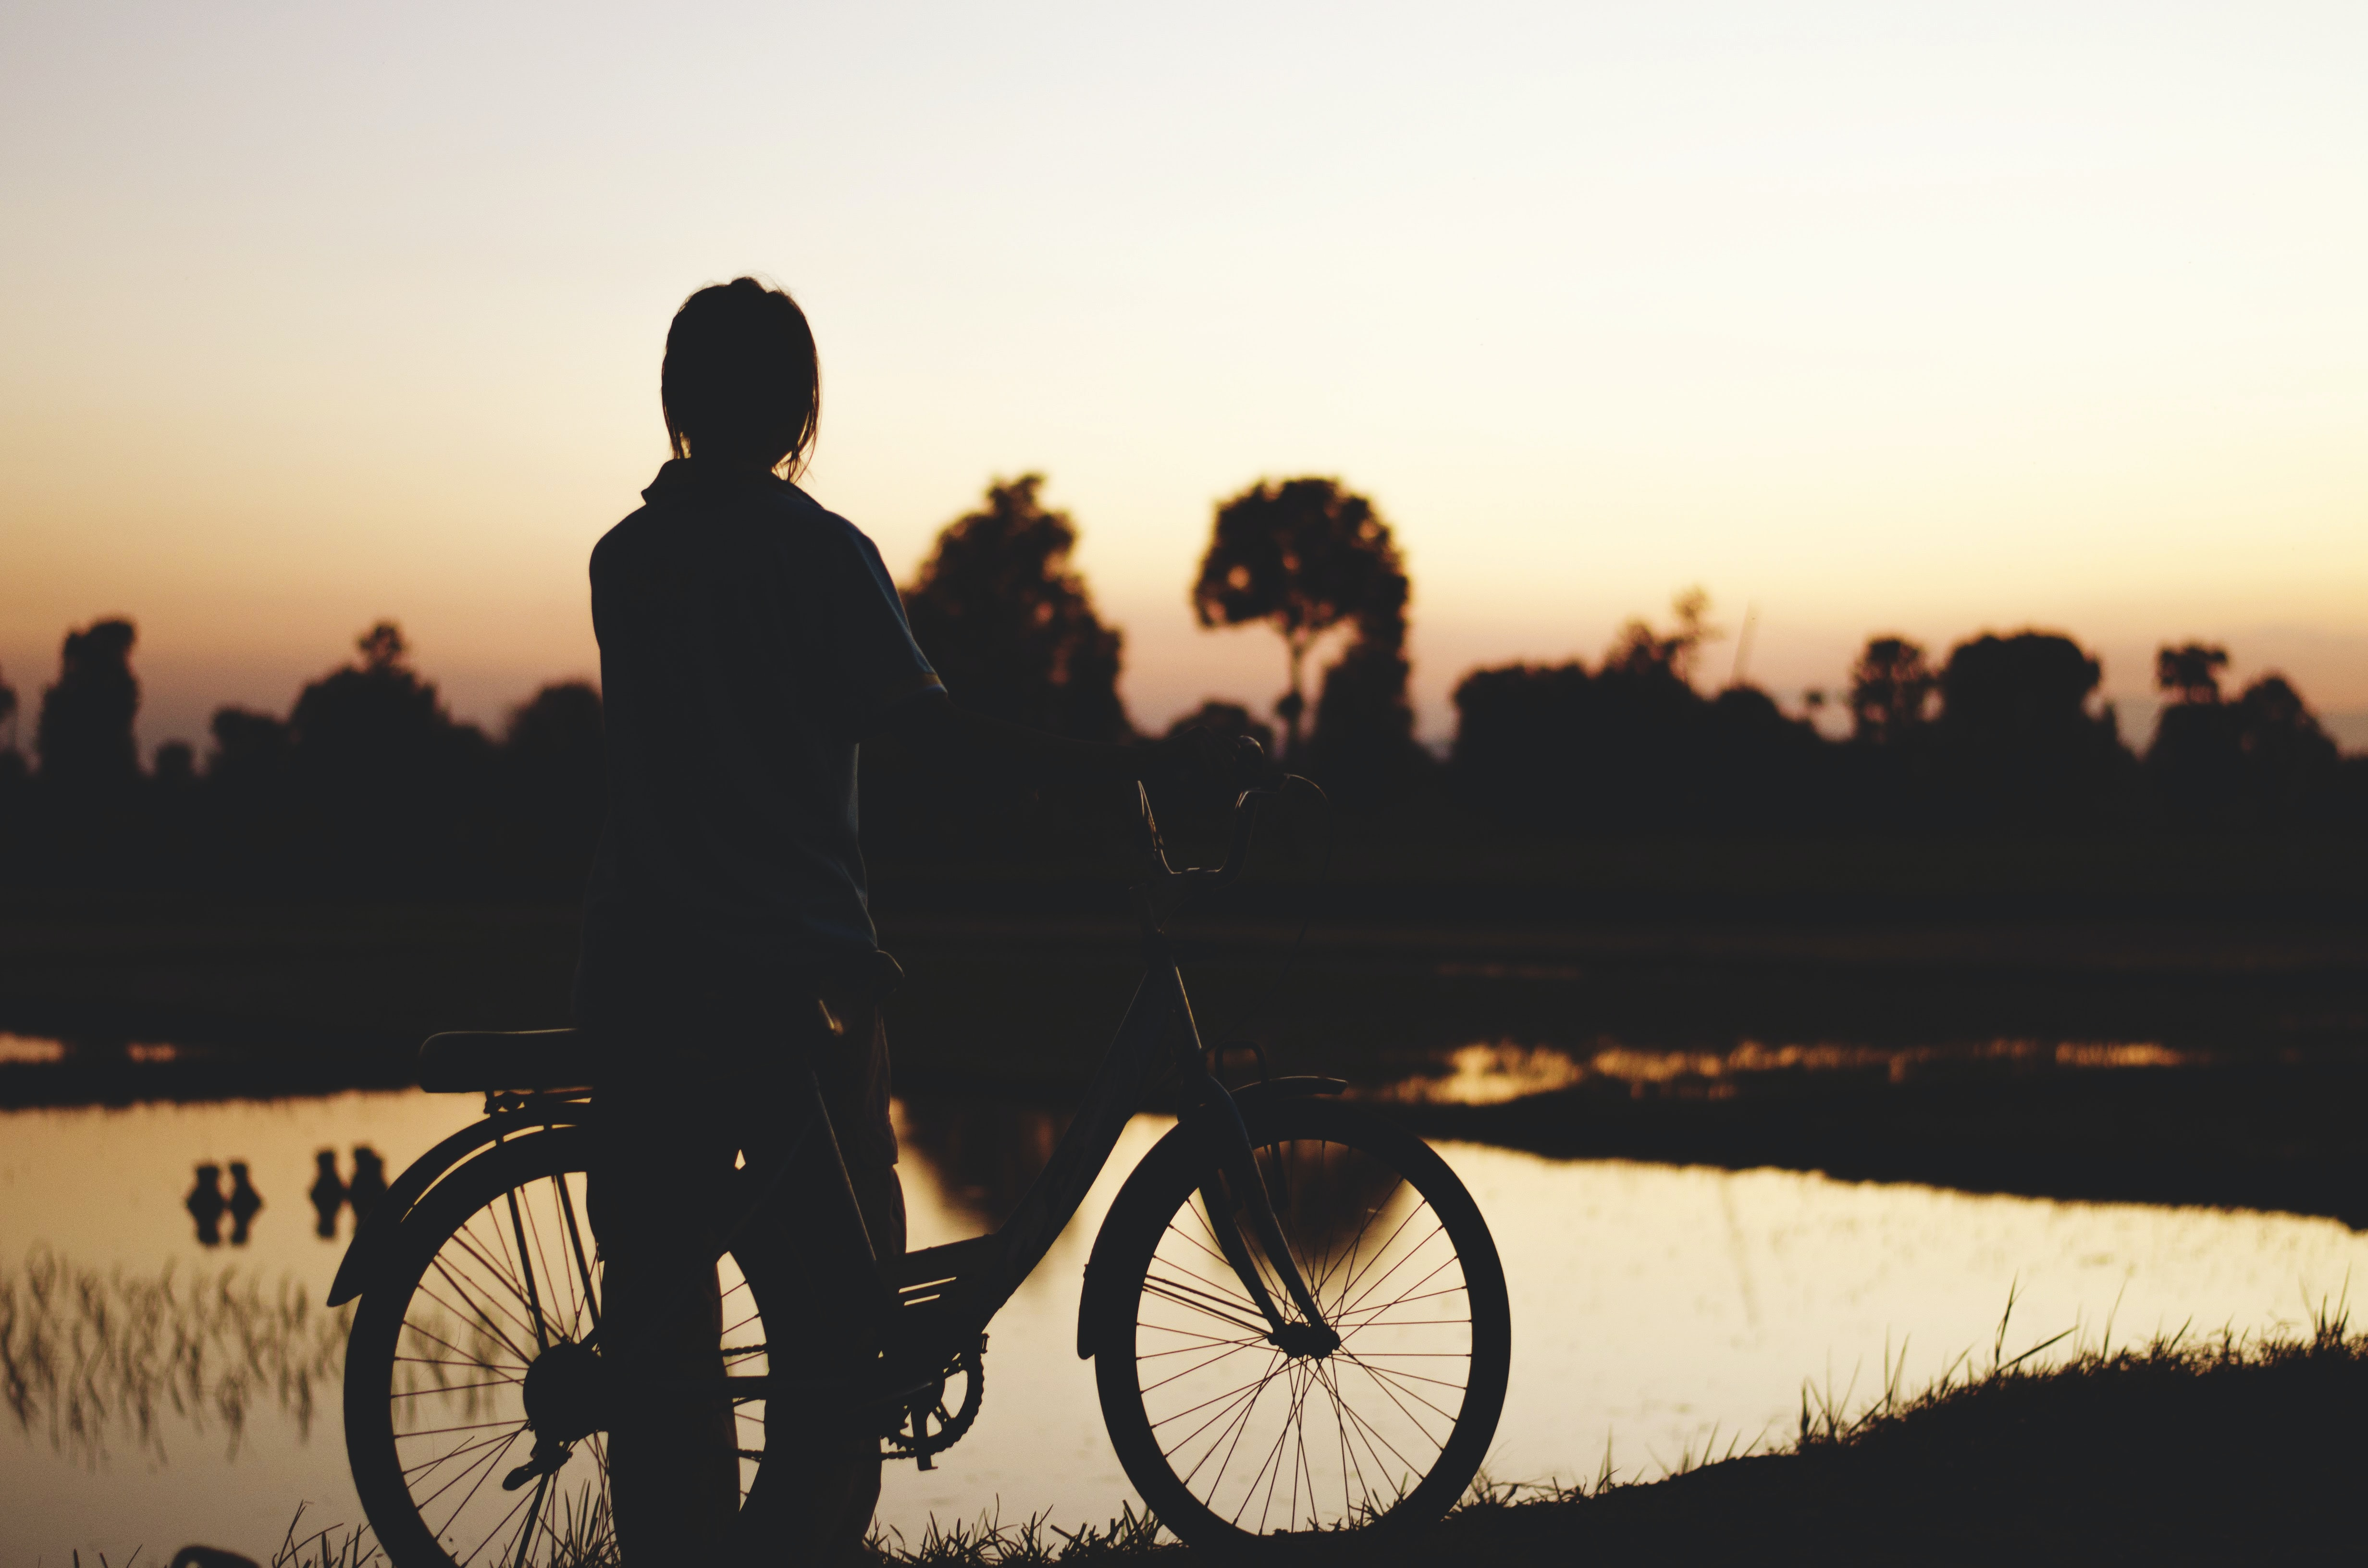 silhouette of person with bicycle near body of water